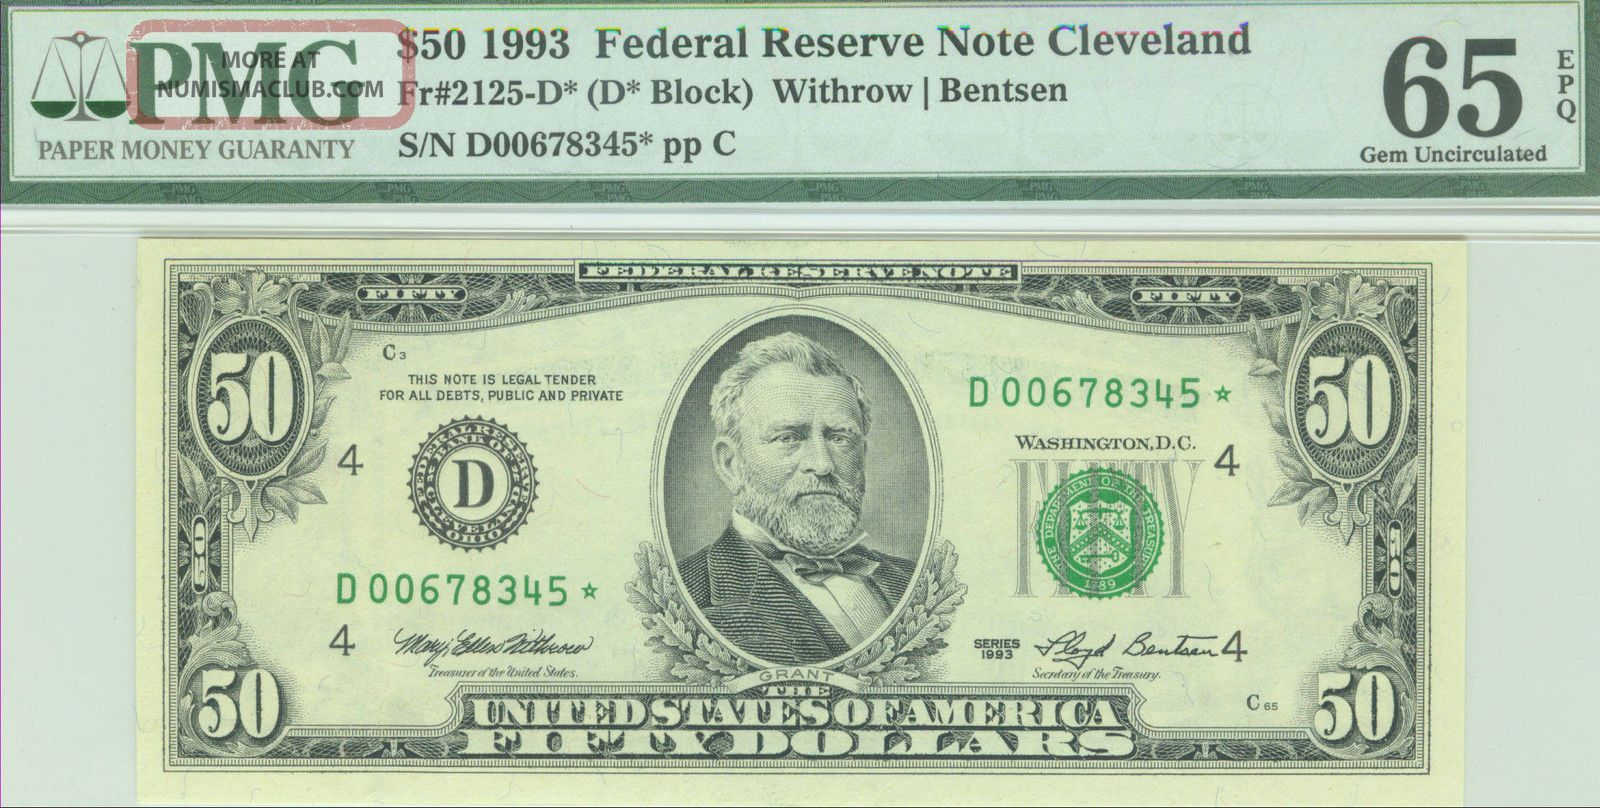 1993 $50 Frn Star Sn D 00678345 Fancy Dual Ladder Up - Pmg 65epq Gem Unc Small Size Notes photo